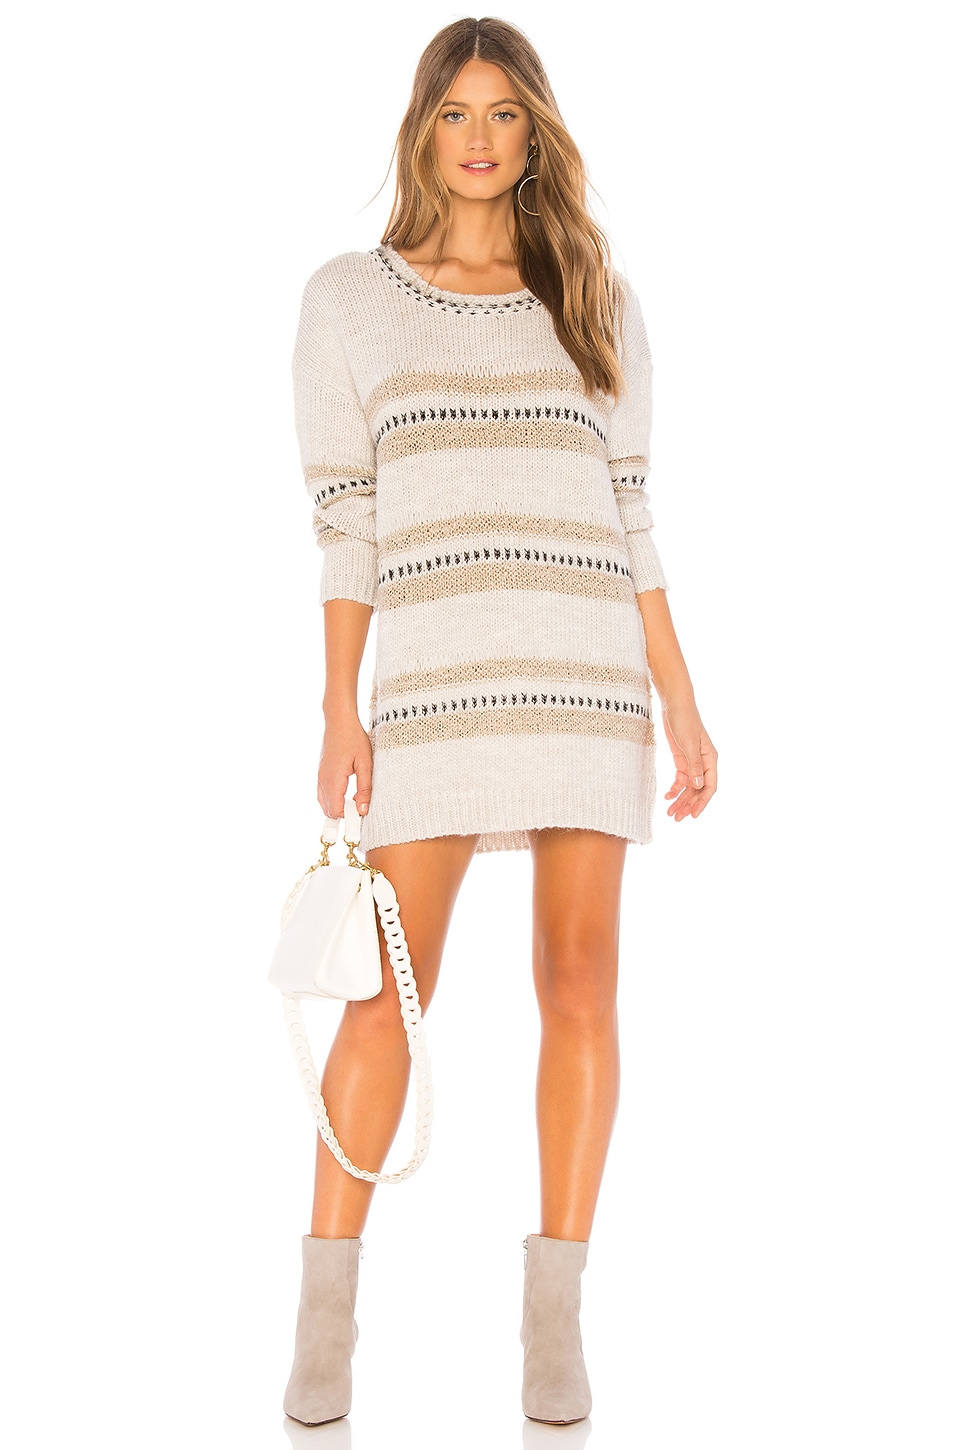 BB Dakota JACK by BB Dakota Spice Of Life Sweater in ivory